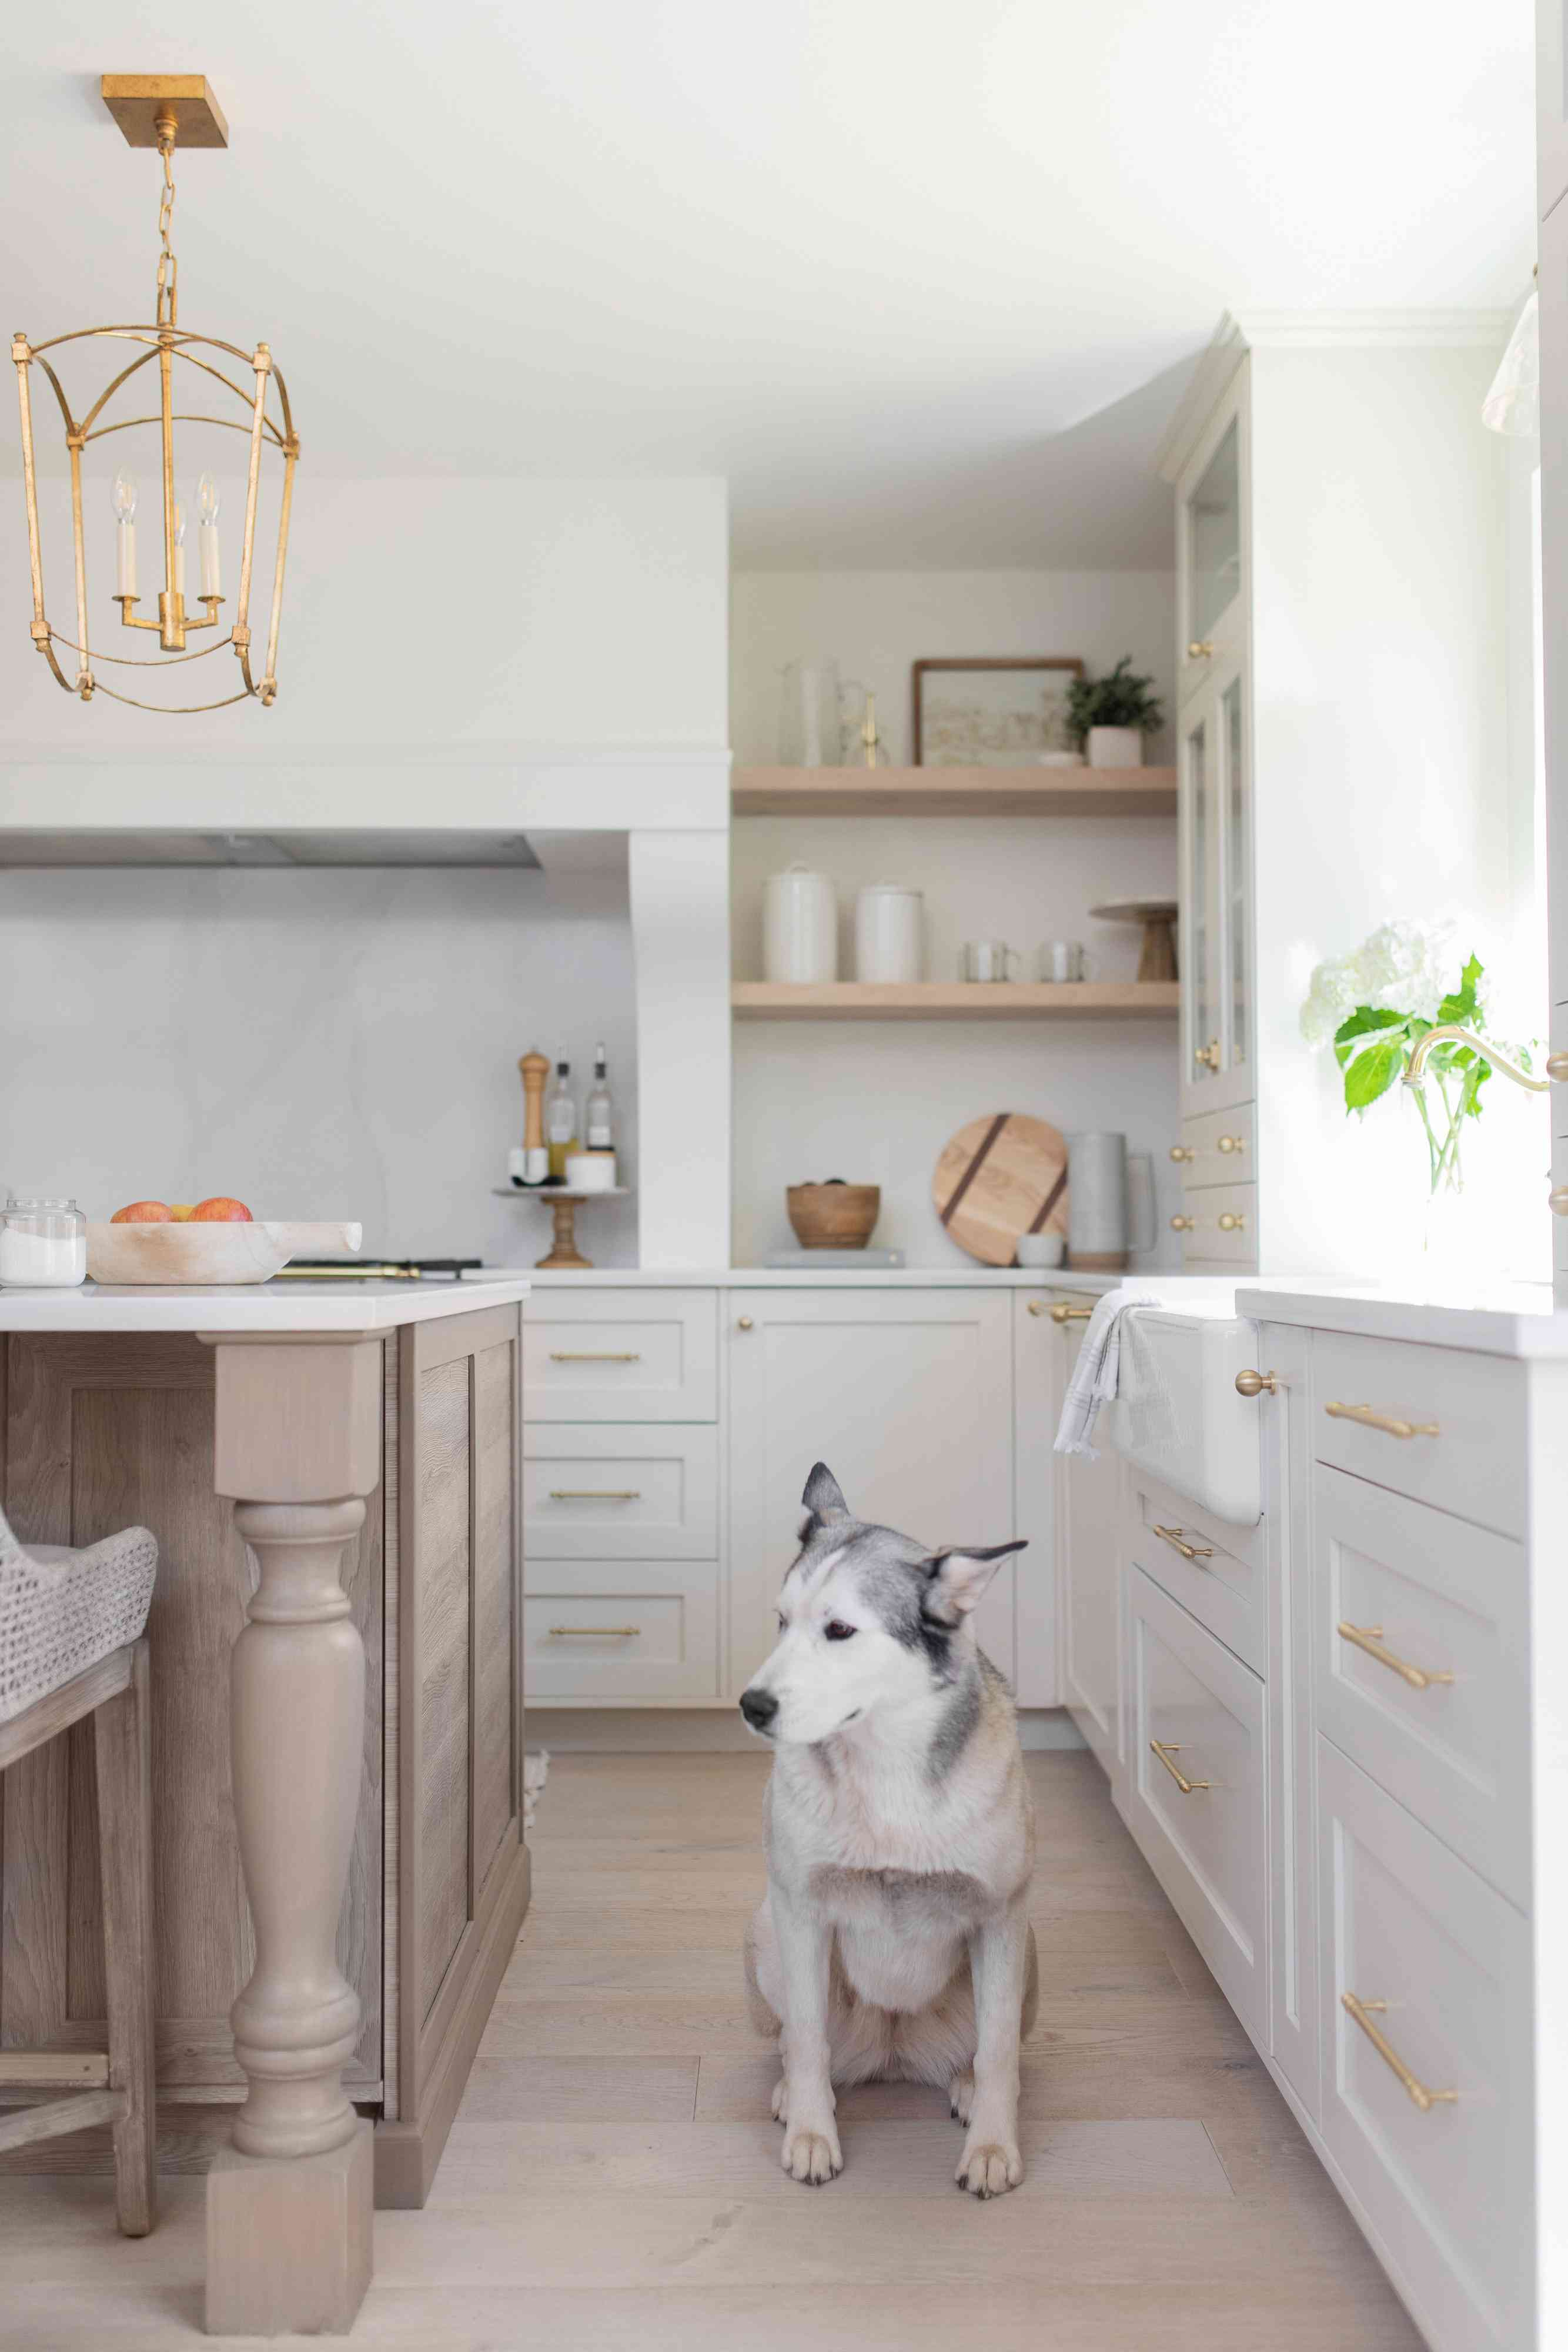 Husky dog in the kitchen.